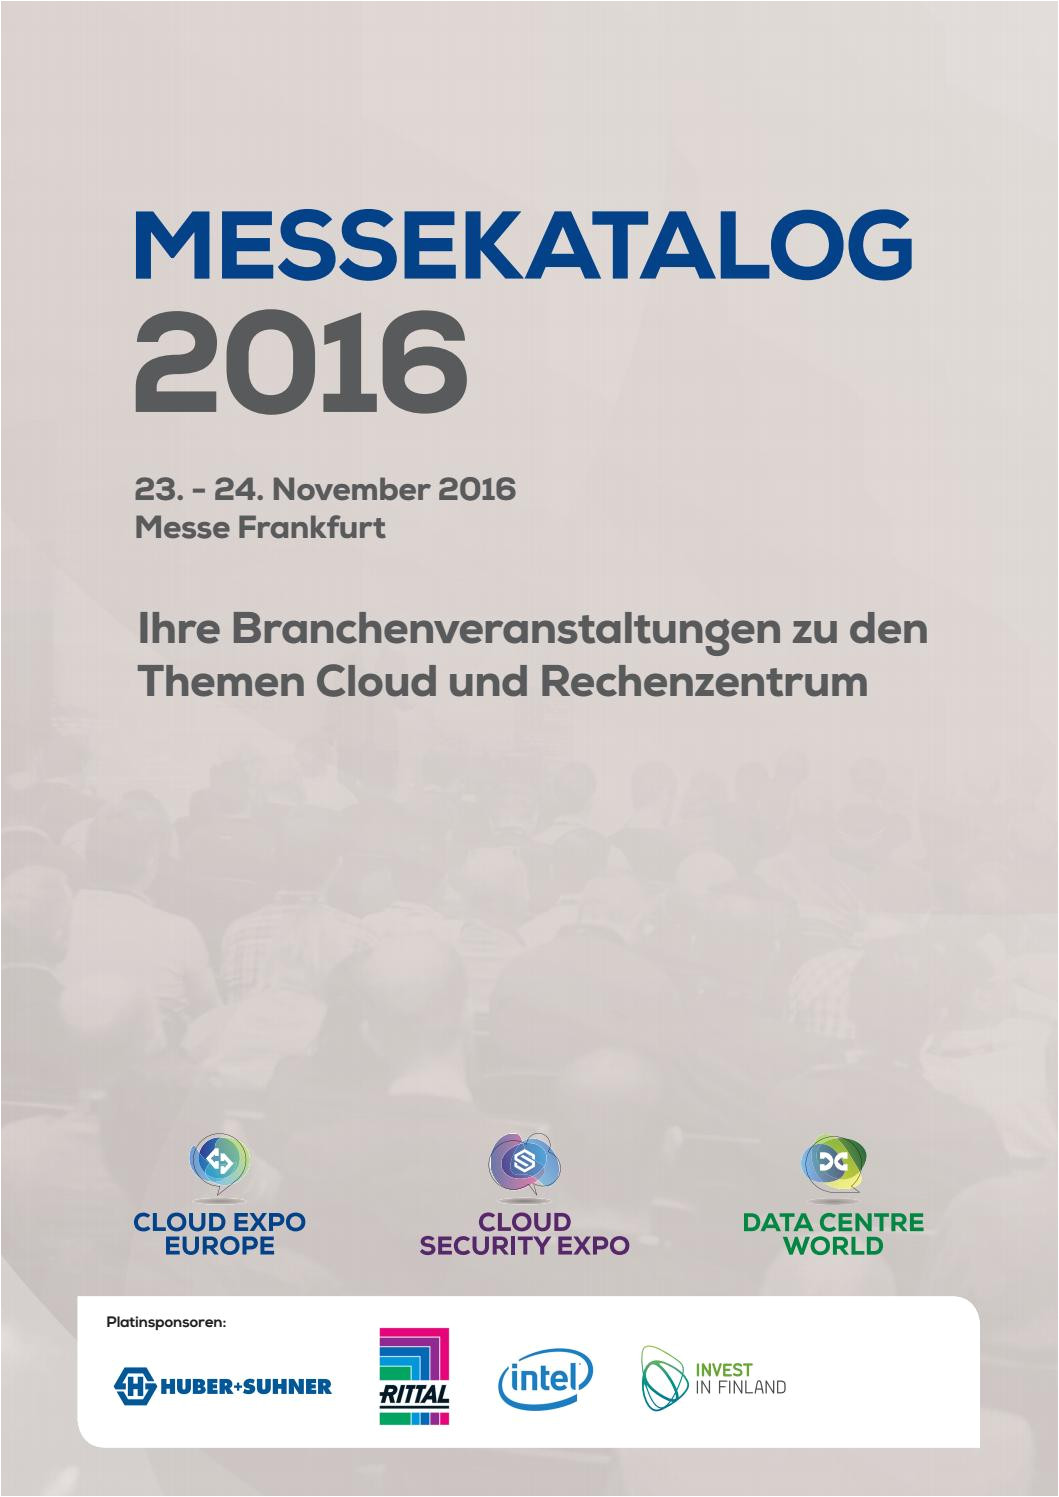 messekatalog cloud expo europe cloud security expo data centre world 2016 in frankfurt by closer still issuu